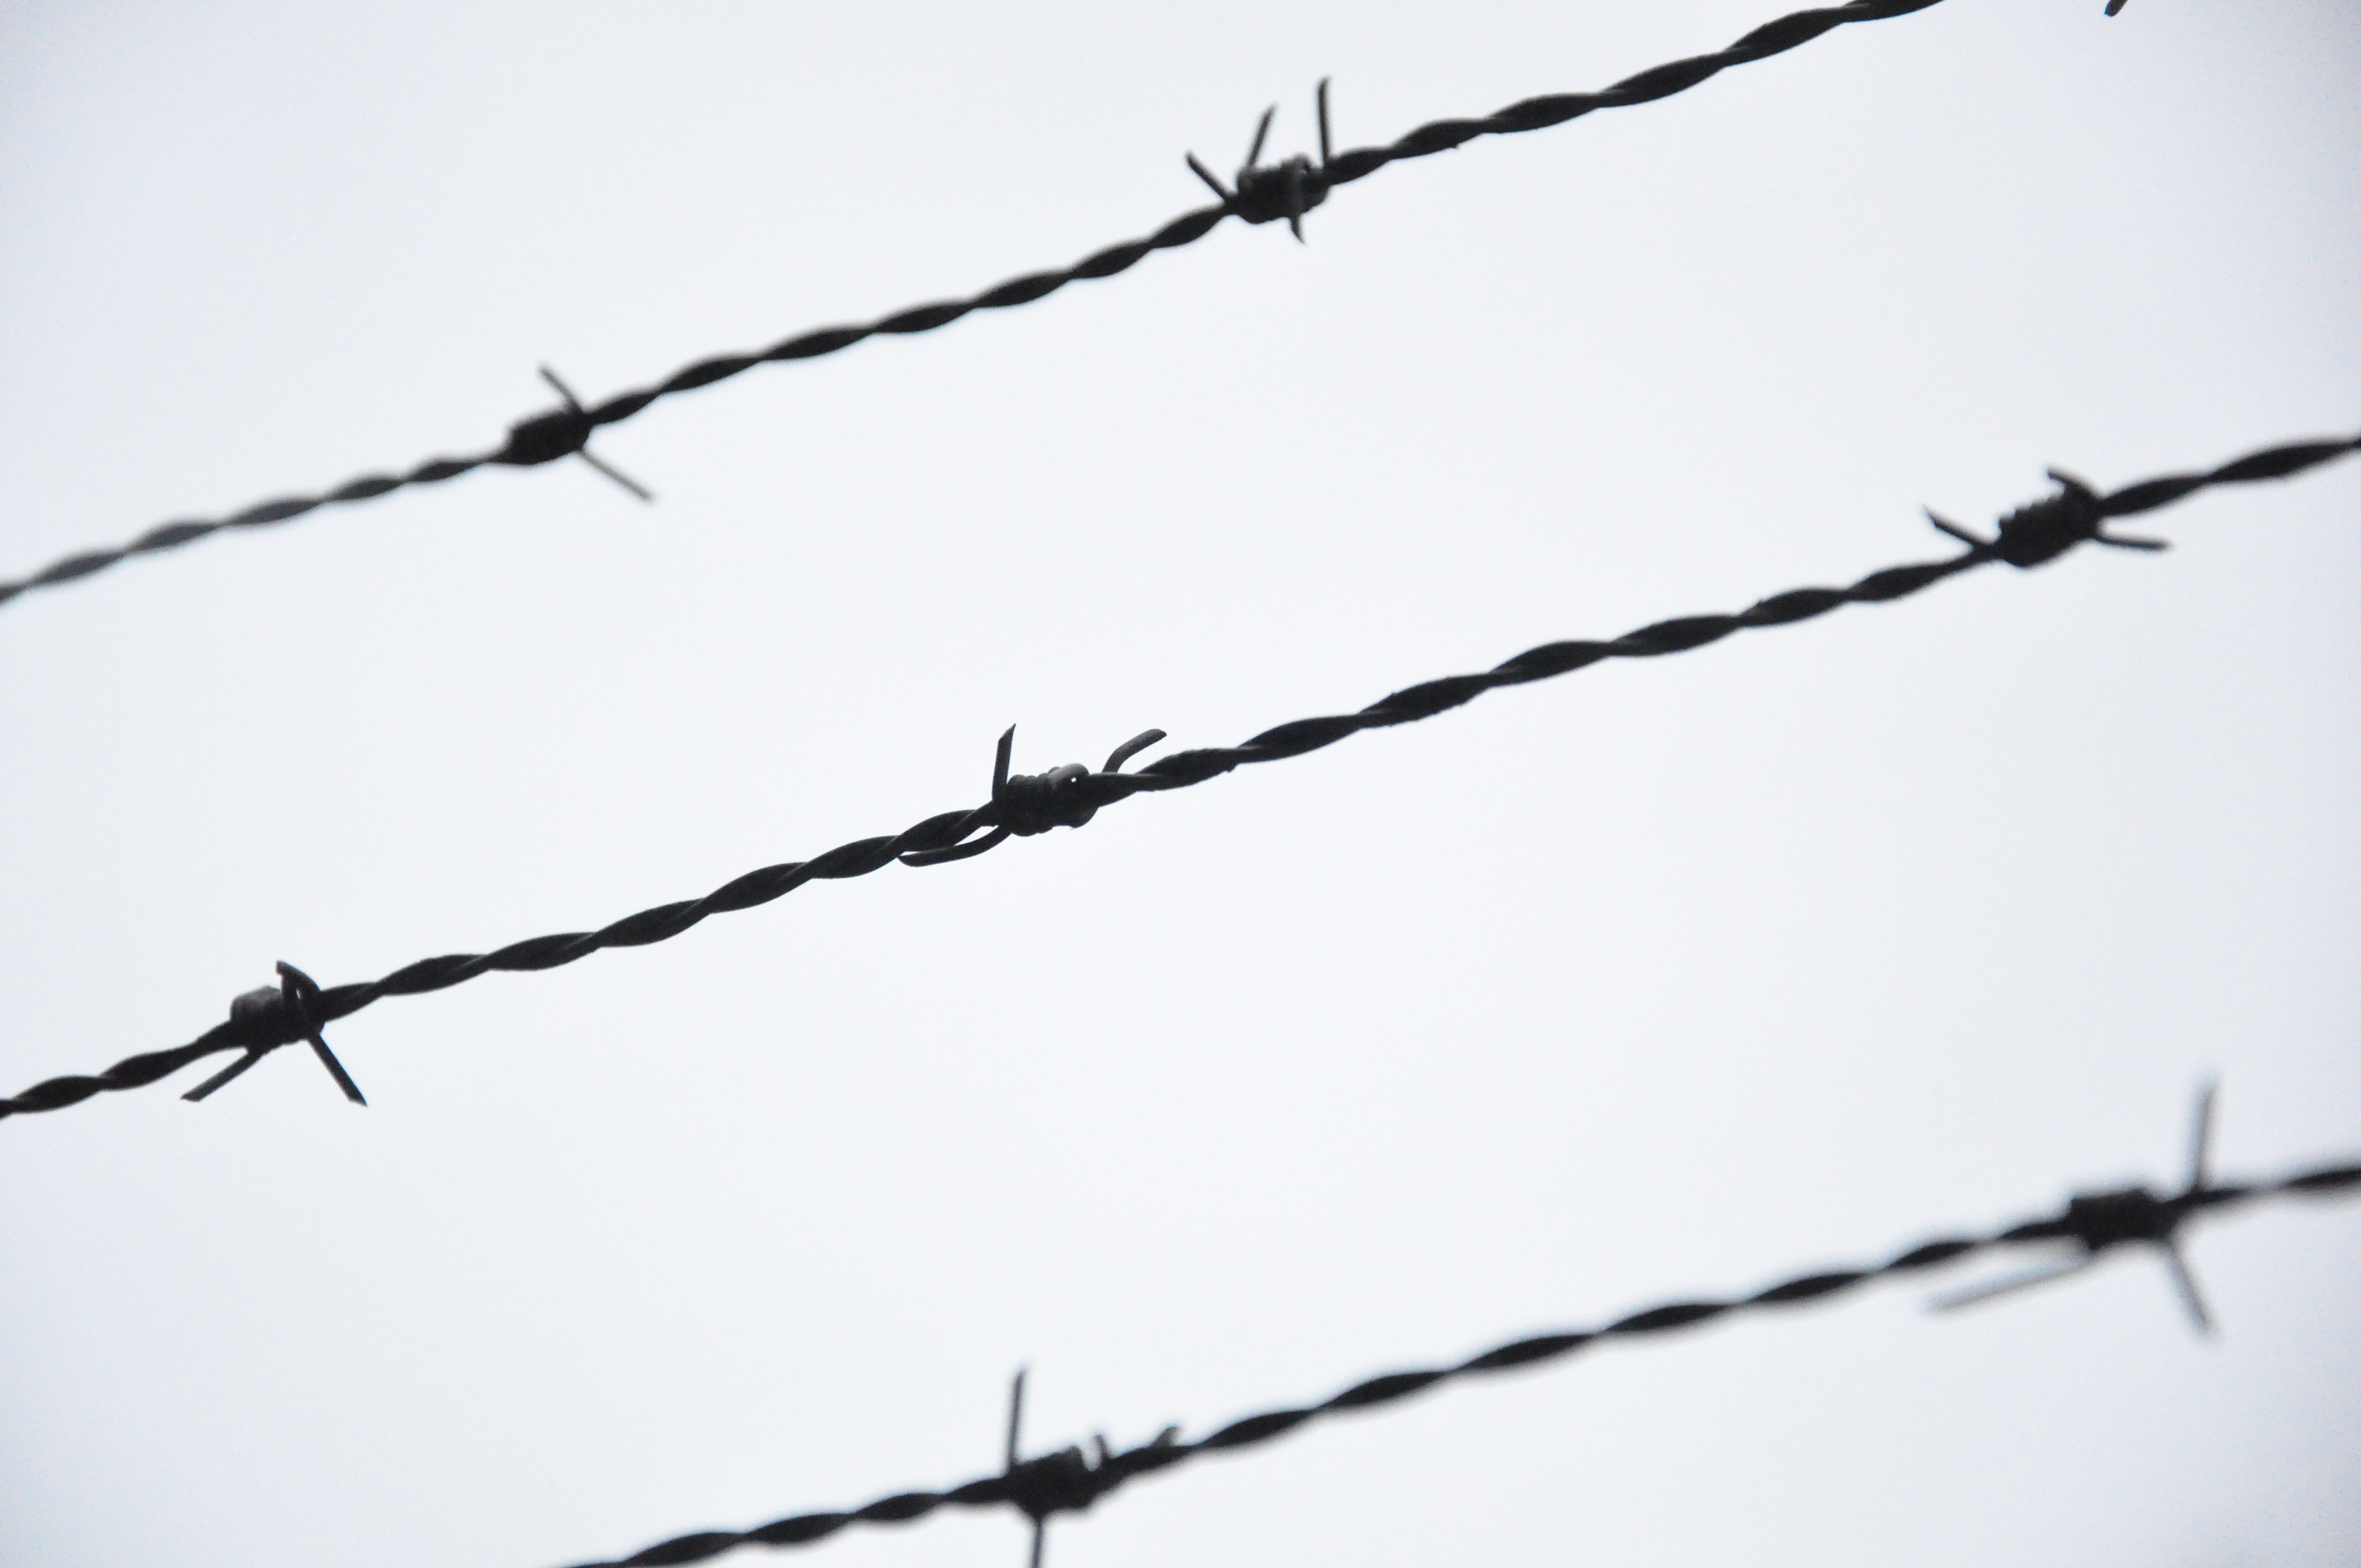 barbed wire drawing - photo #15